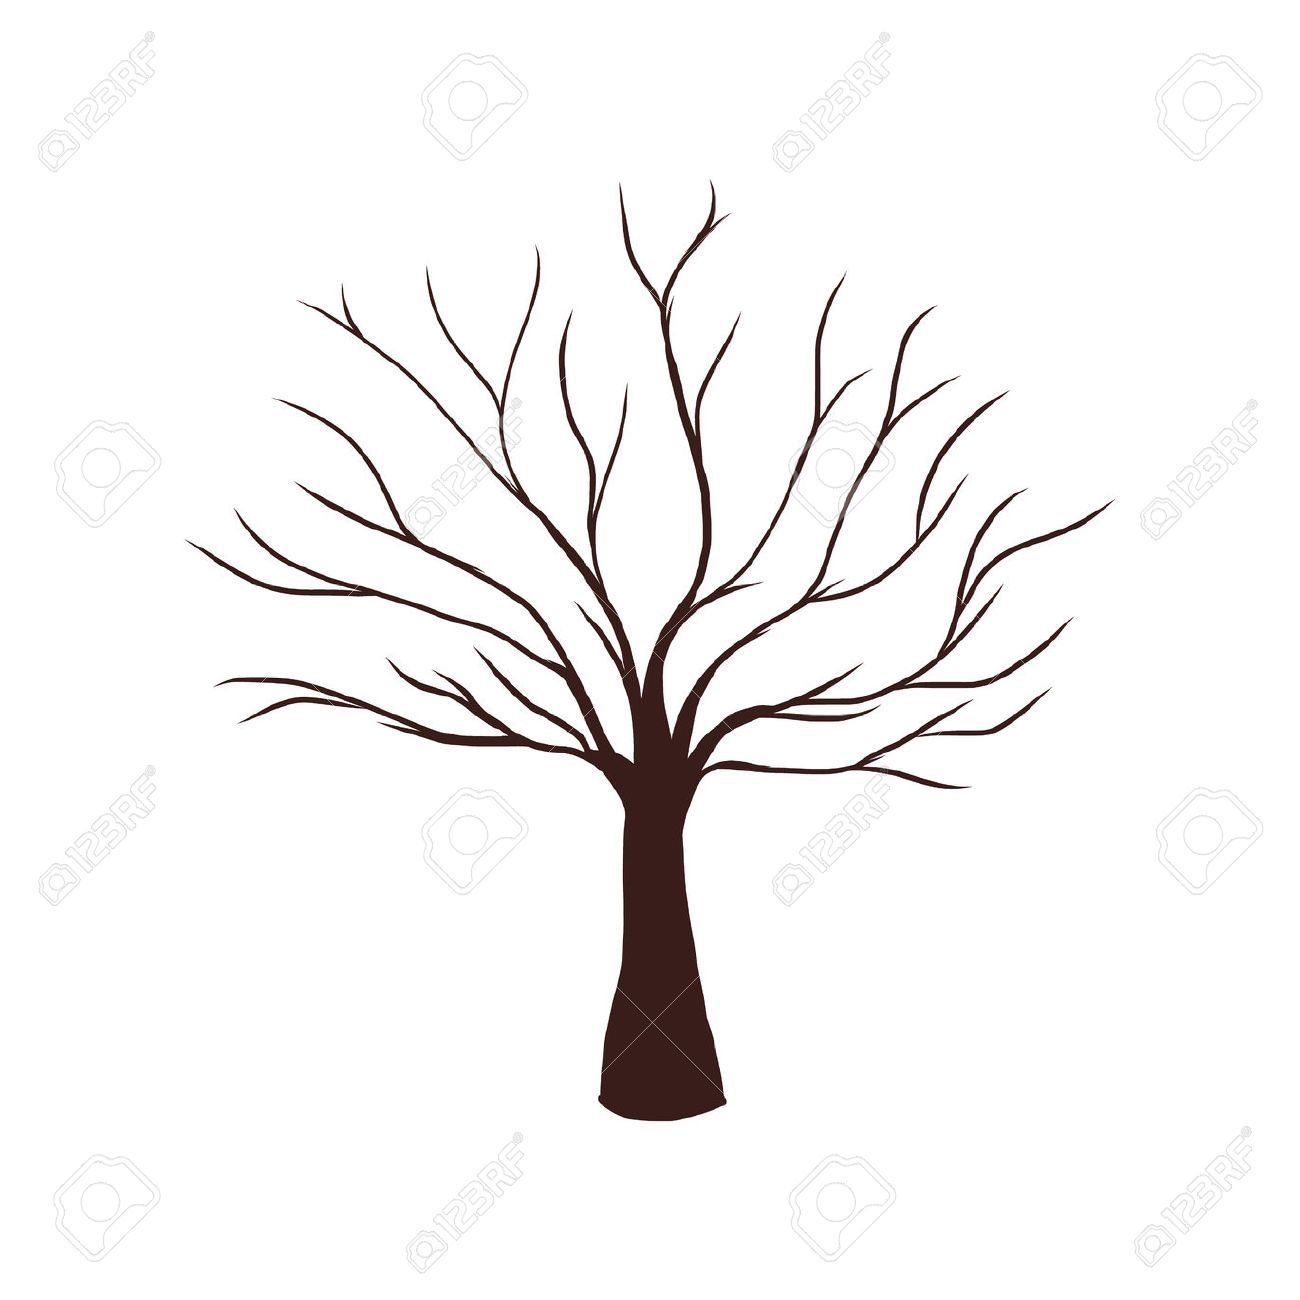 23860160 Dead Tree Without Leaves Vector Illustration Tree Silhouette Bare Jpg 1 300 1 300 Pixels Arbol De Otono Dibujo Arboles En Otono Dibujo De Arbol